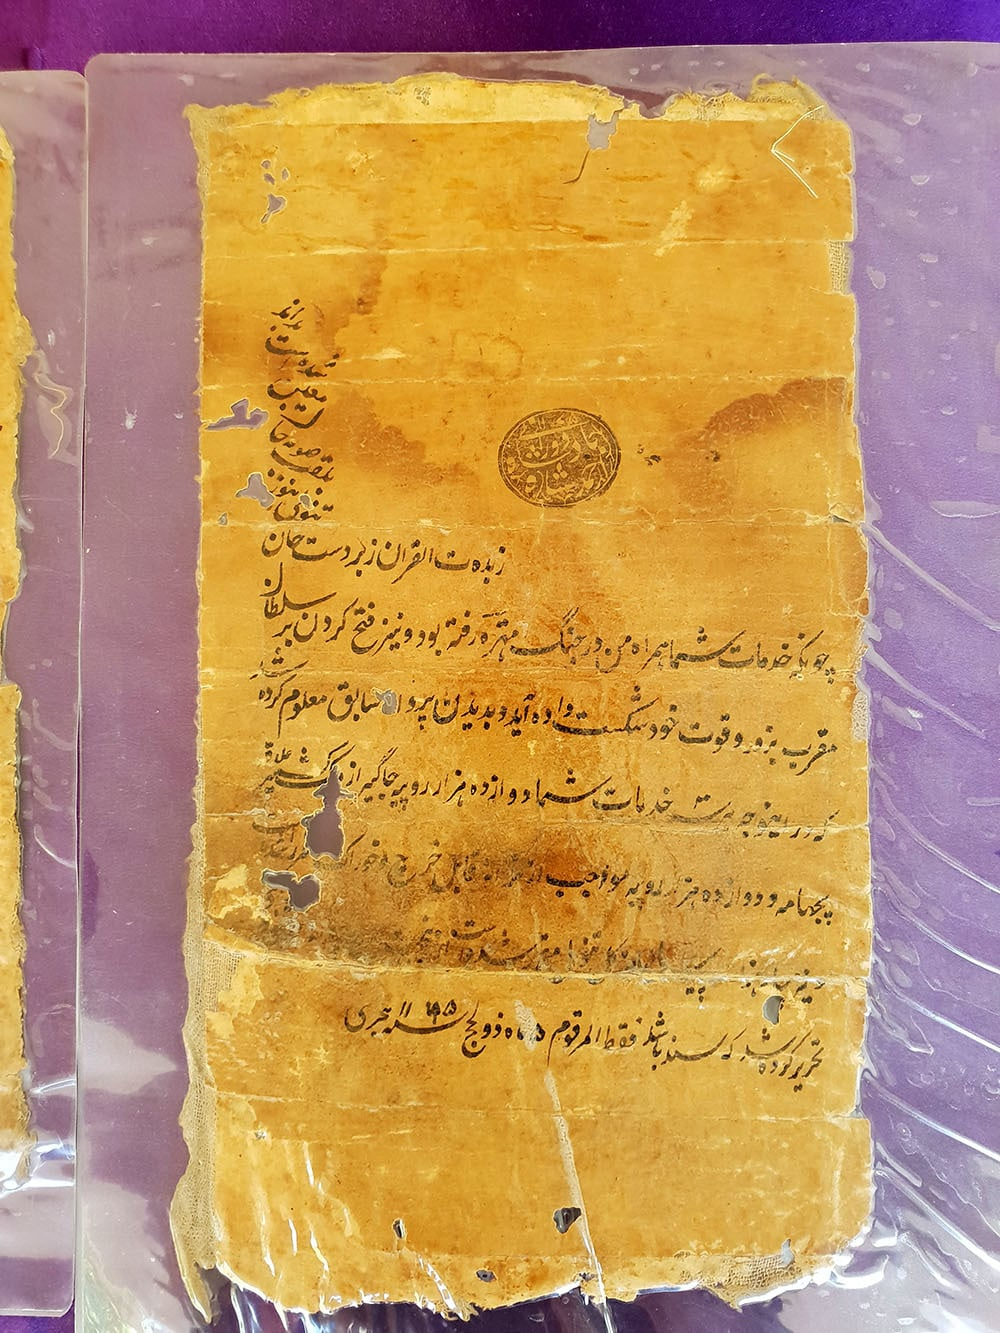 Ahmad Shah Abdali's letter of recognition and support to Subah Khan Tanoli. Photo credit: Jahandad Khan